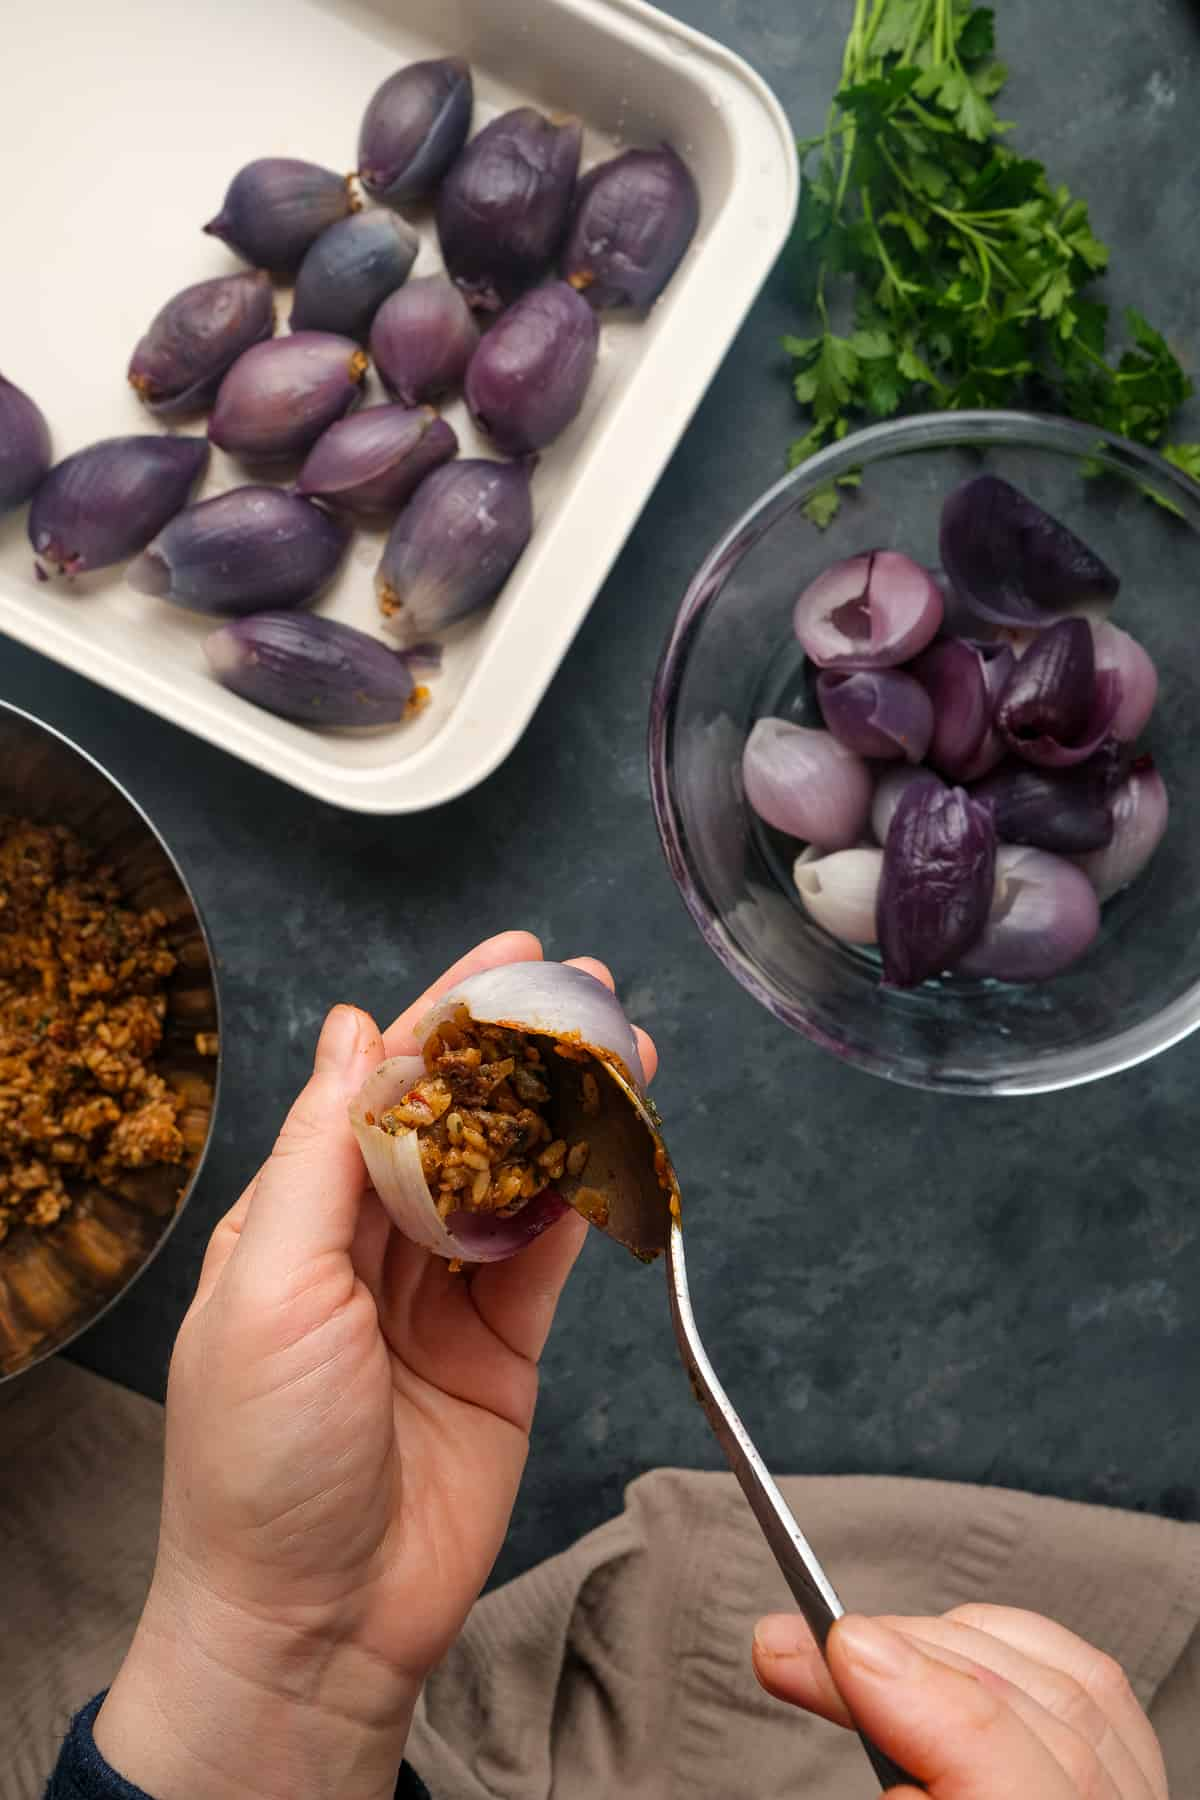 Hands stuffing an onion with ground beef and rice filling with a spoon more stuffed onions in a pan and onion layers in a bowl on the side.